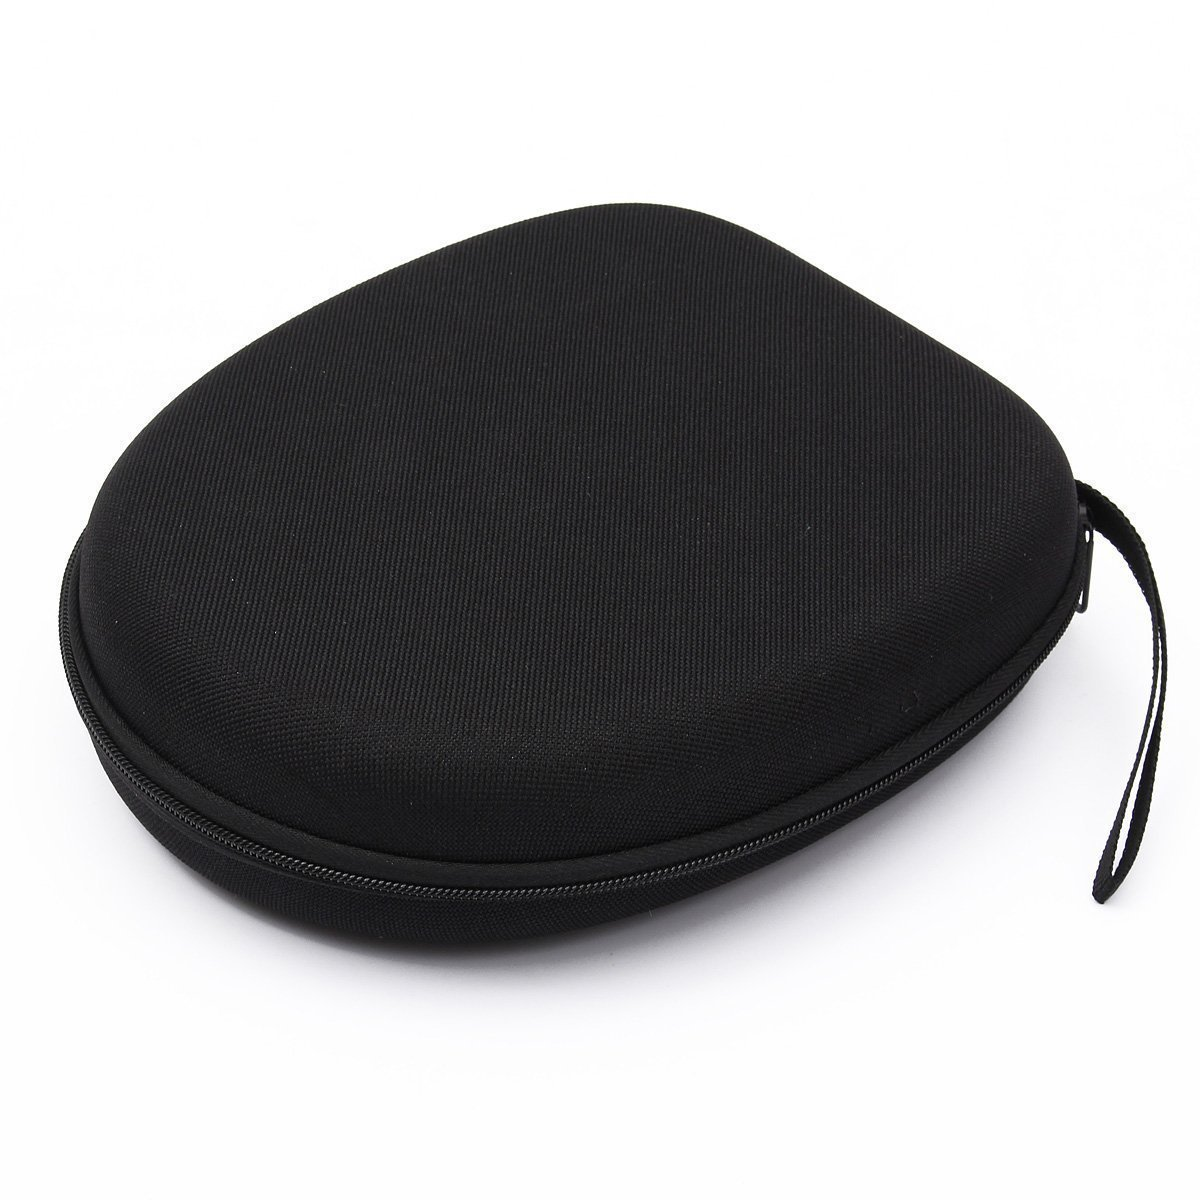 Portable Headphone Case Bag Pouch Cover Box For Sony Jgos17 Headphones Mdr Zx110 Ap Black Electronics